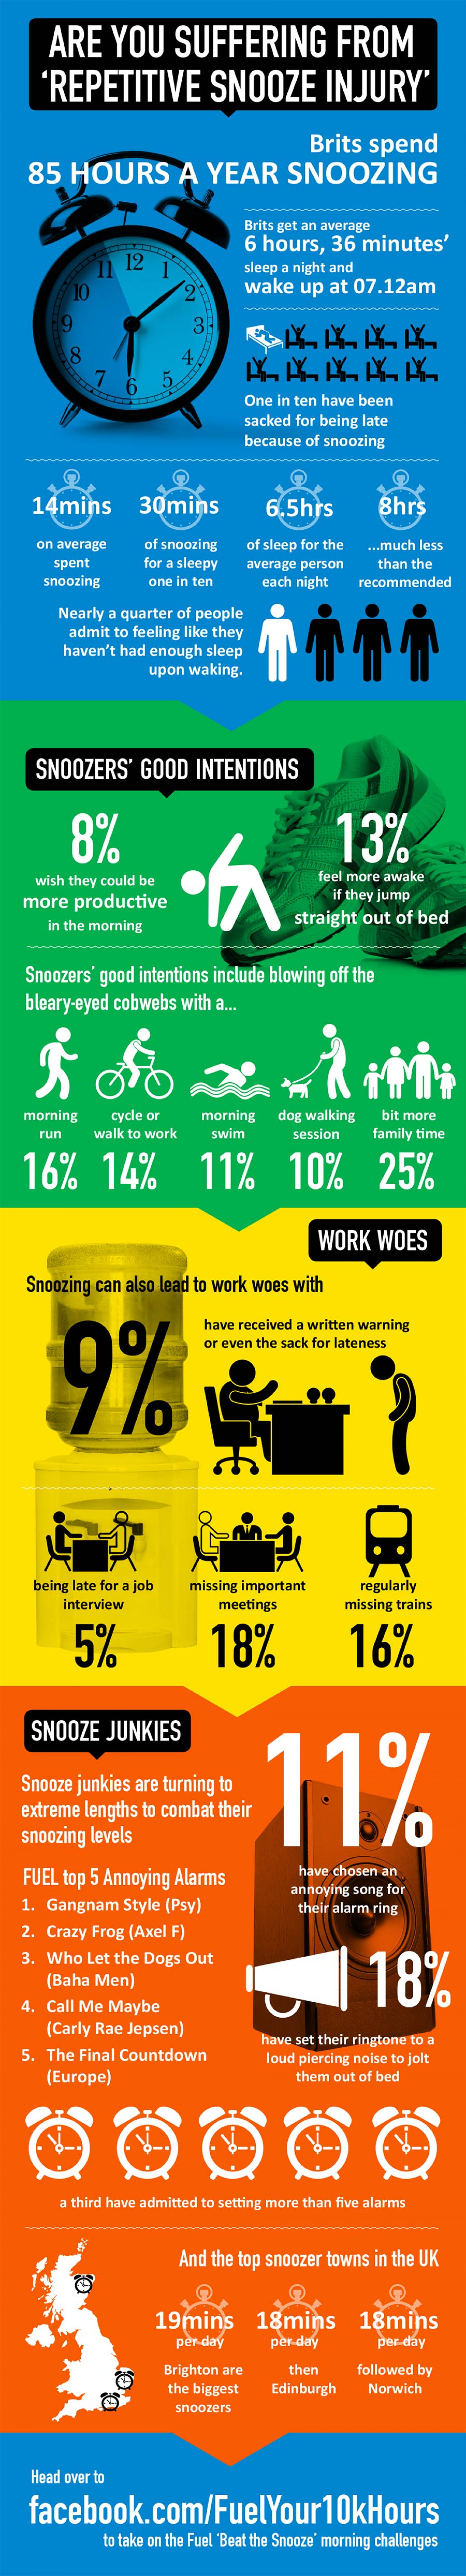 Are You Suffering From 'Repetitive Snooze Injury' Infographic